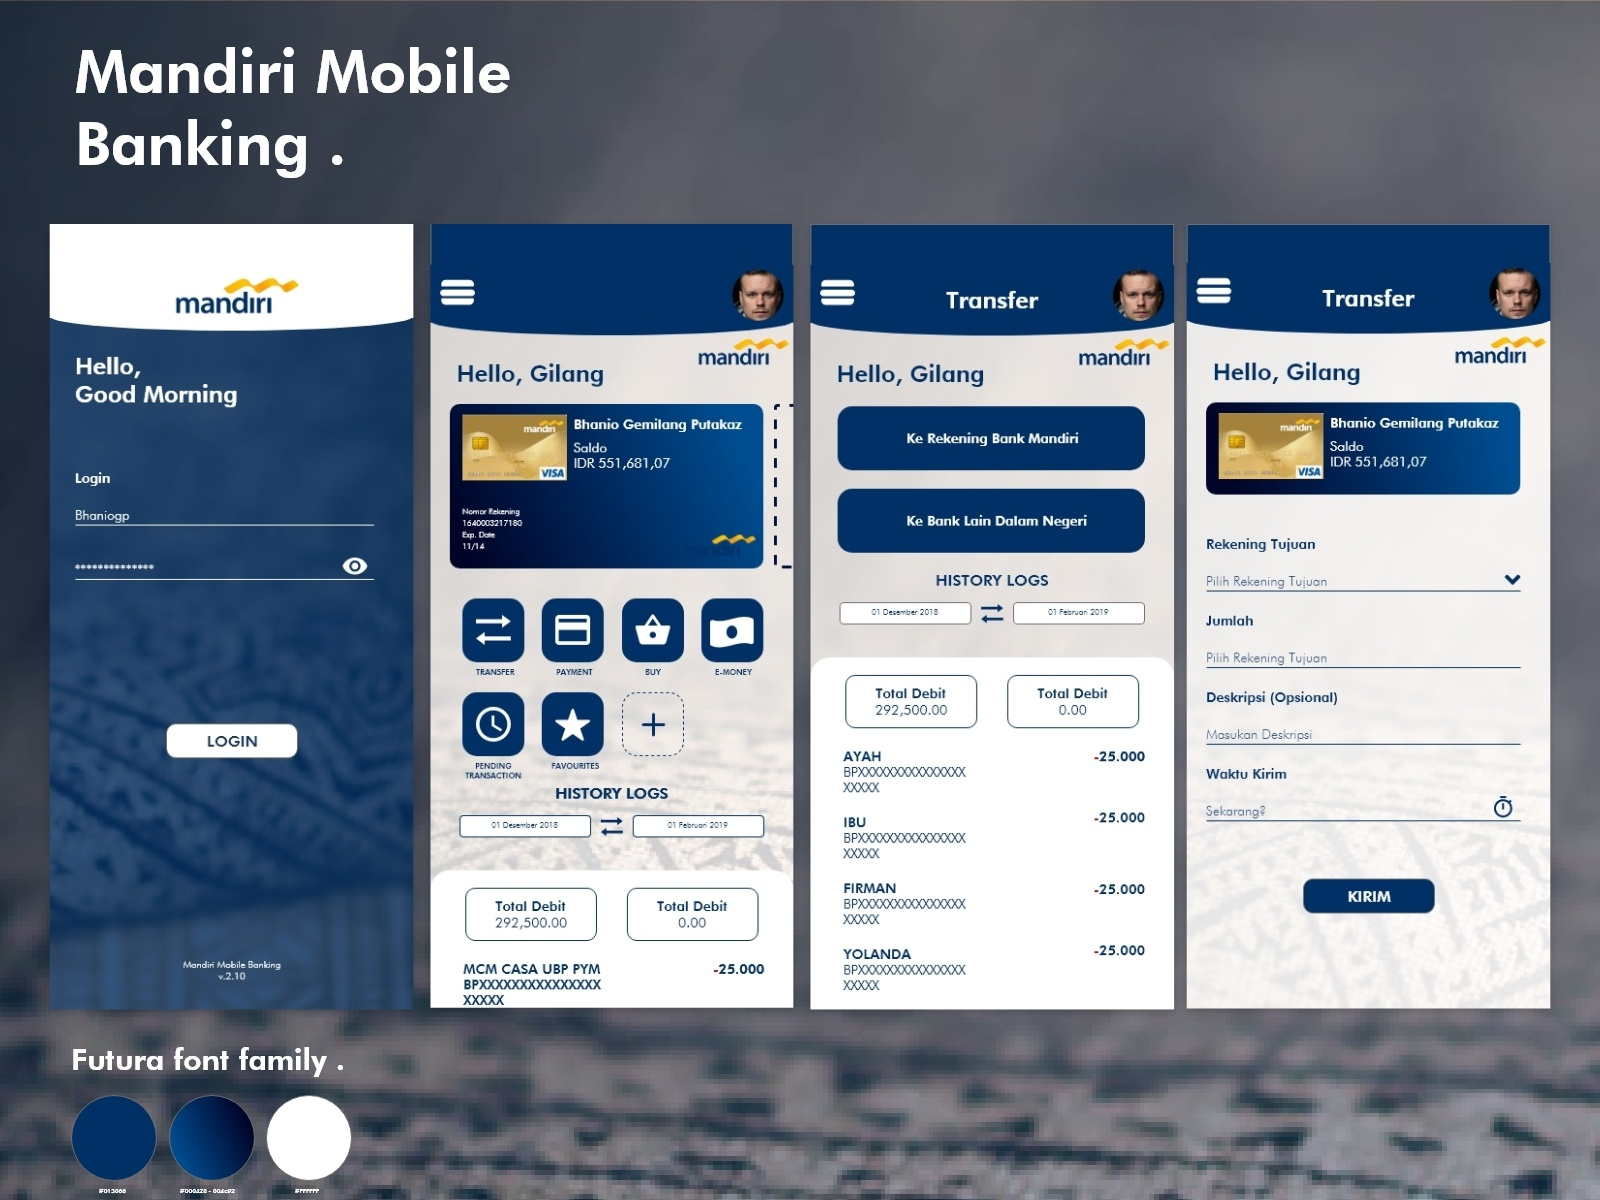 Mandiri Mobile Banking Redesign Daily Ui By Bhanio Gemilang On Dribbble